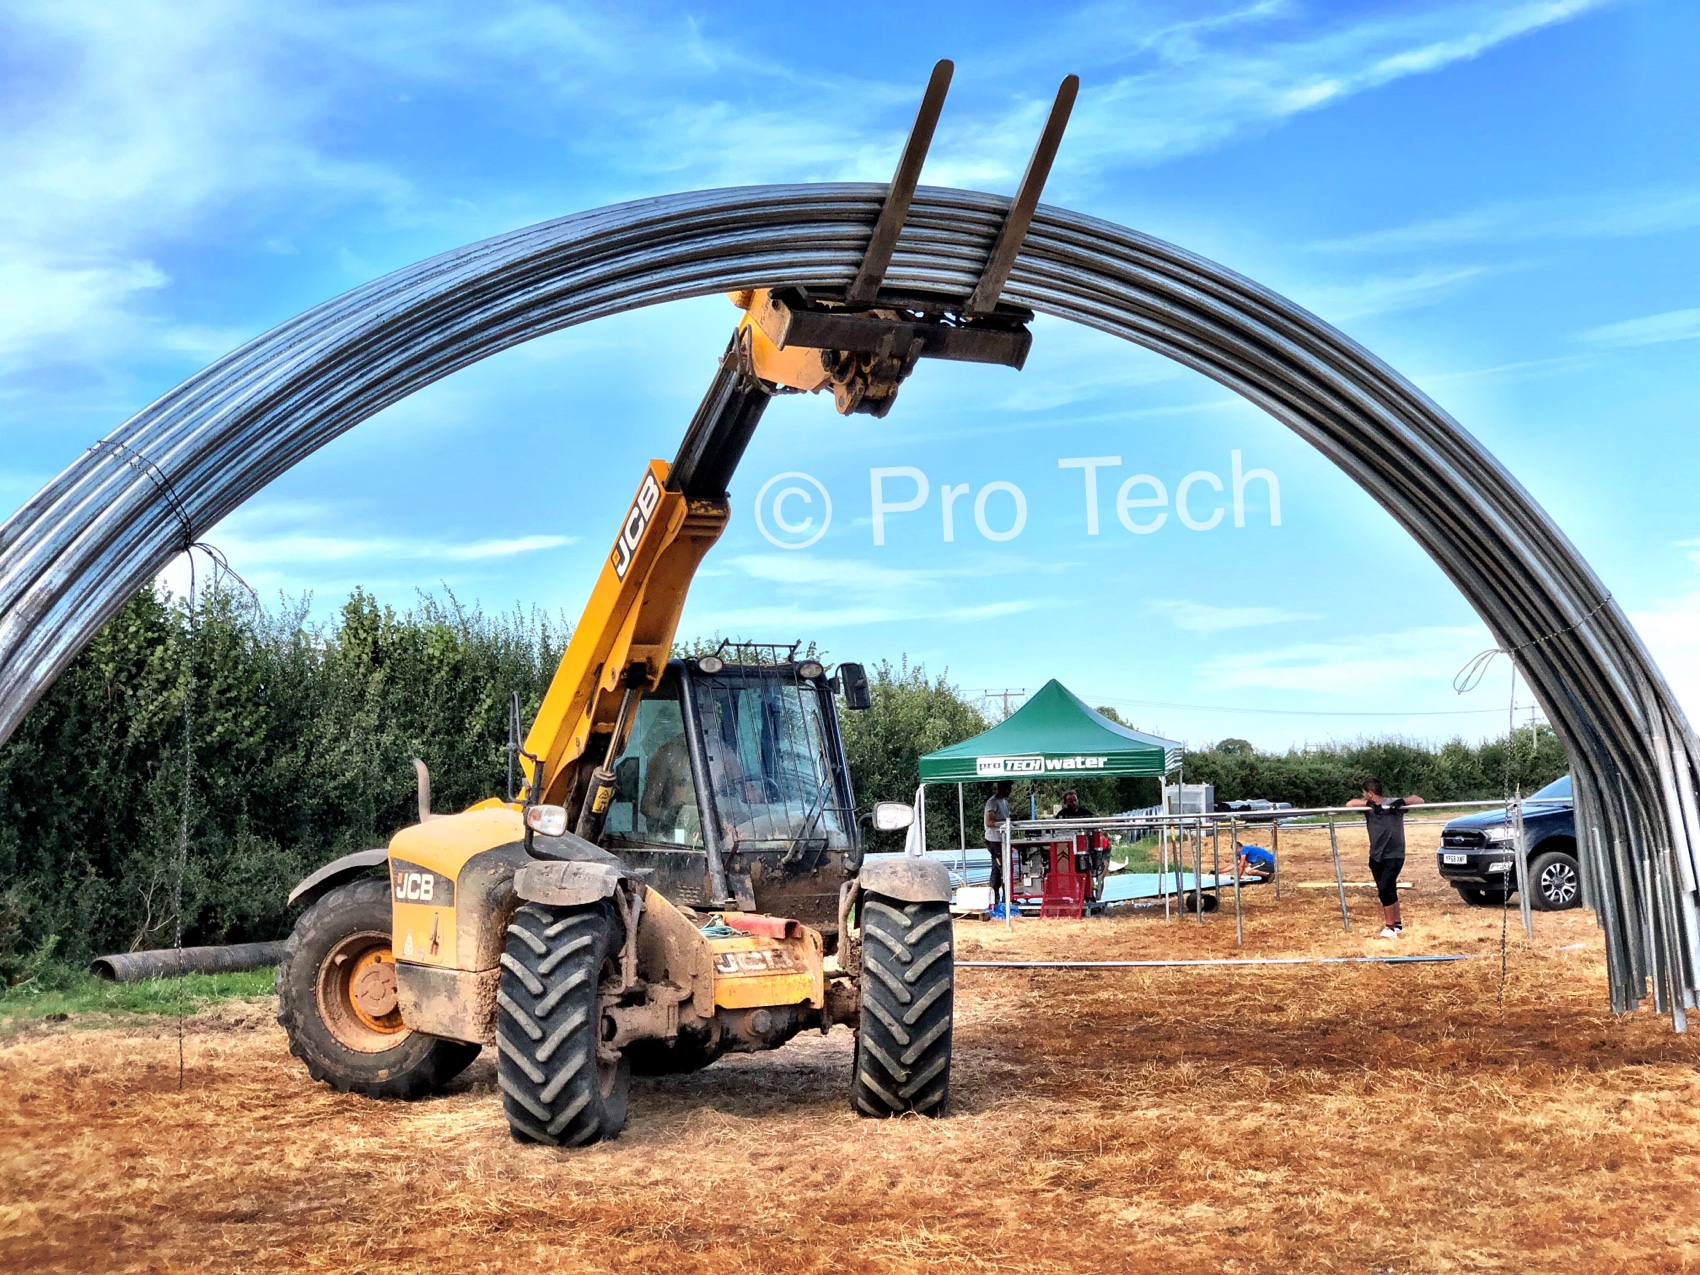 Oval tube polytunnels, Protech tunnels, oval tube